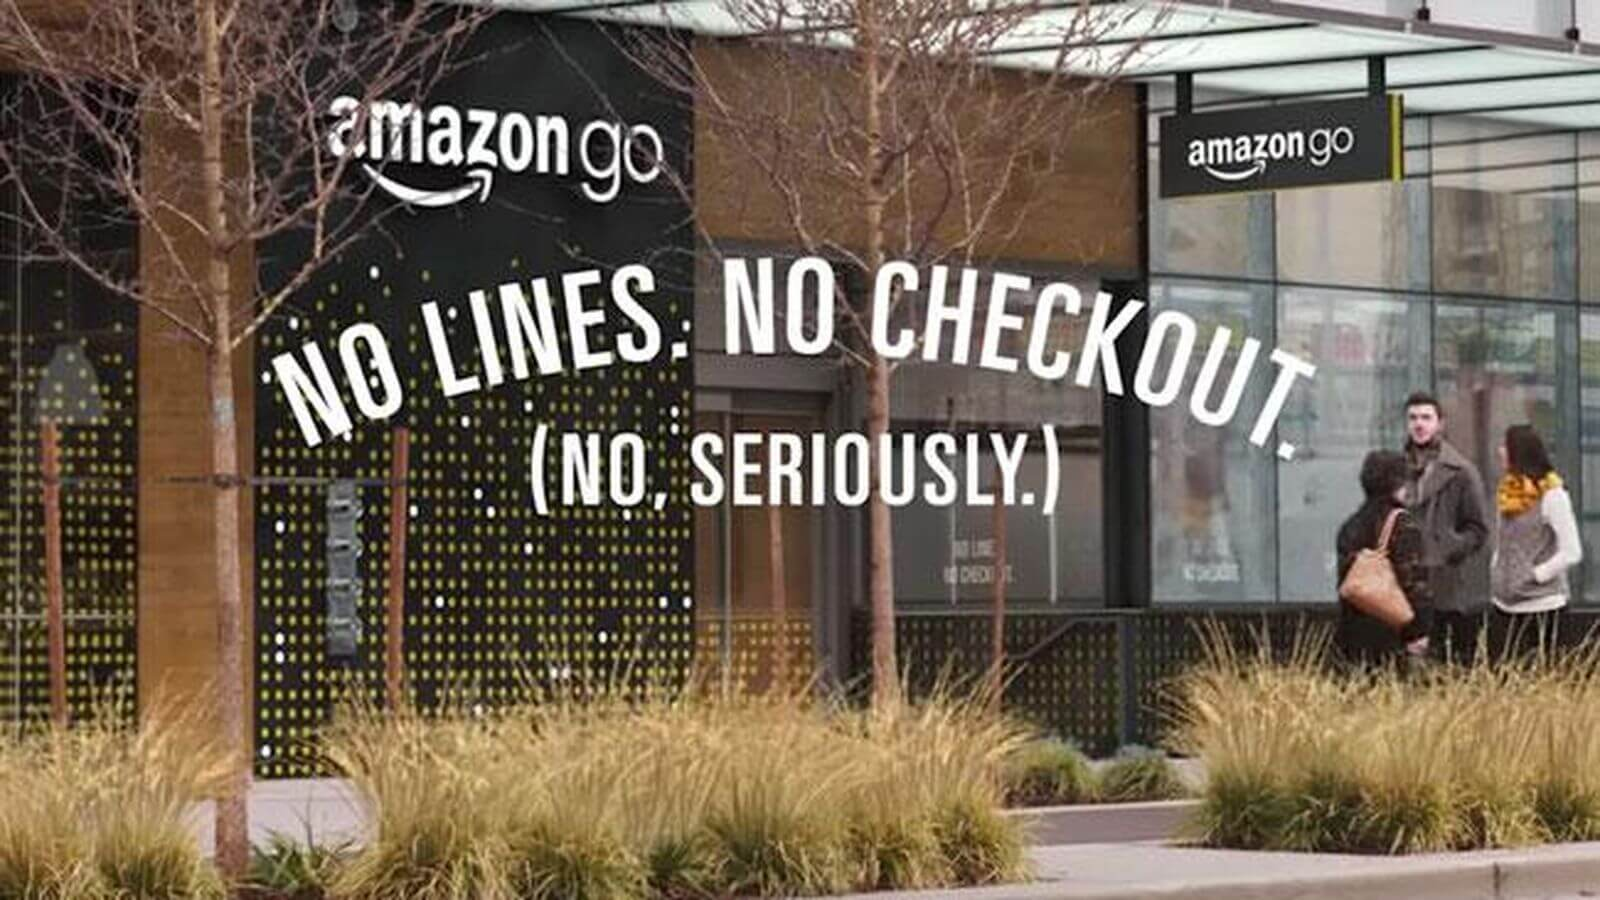 amazon-go-shop